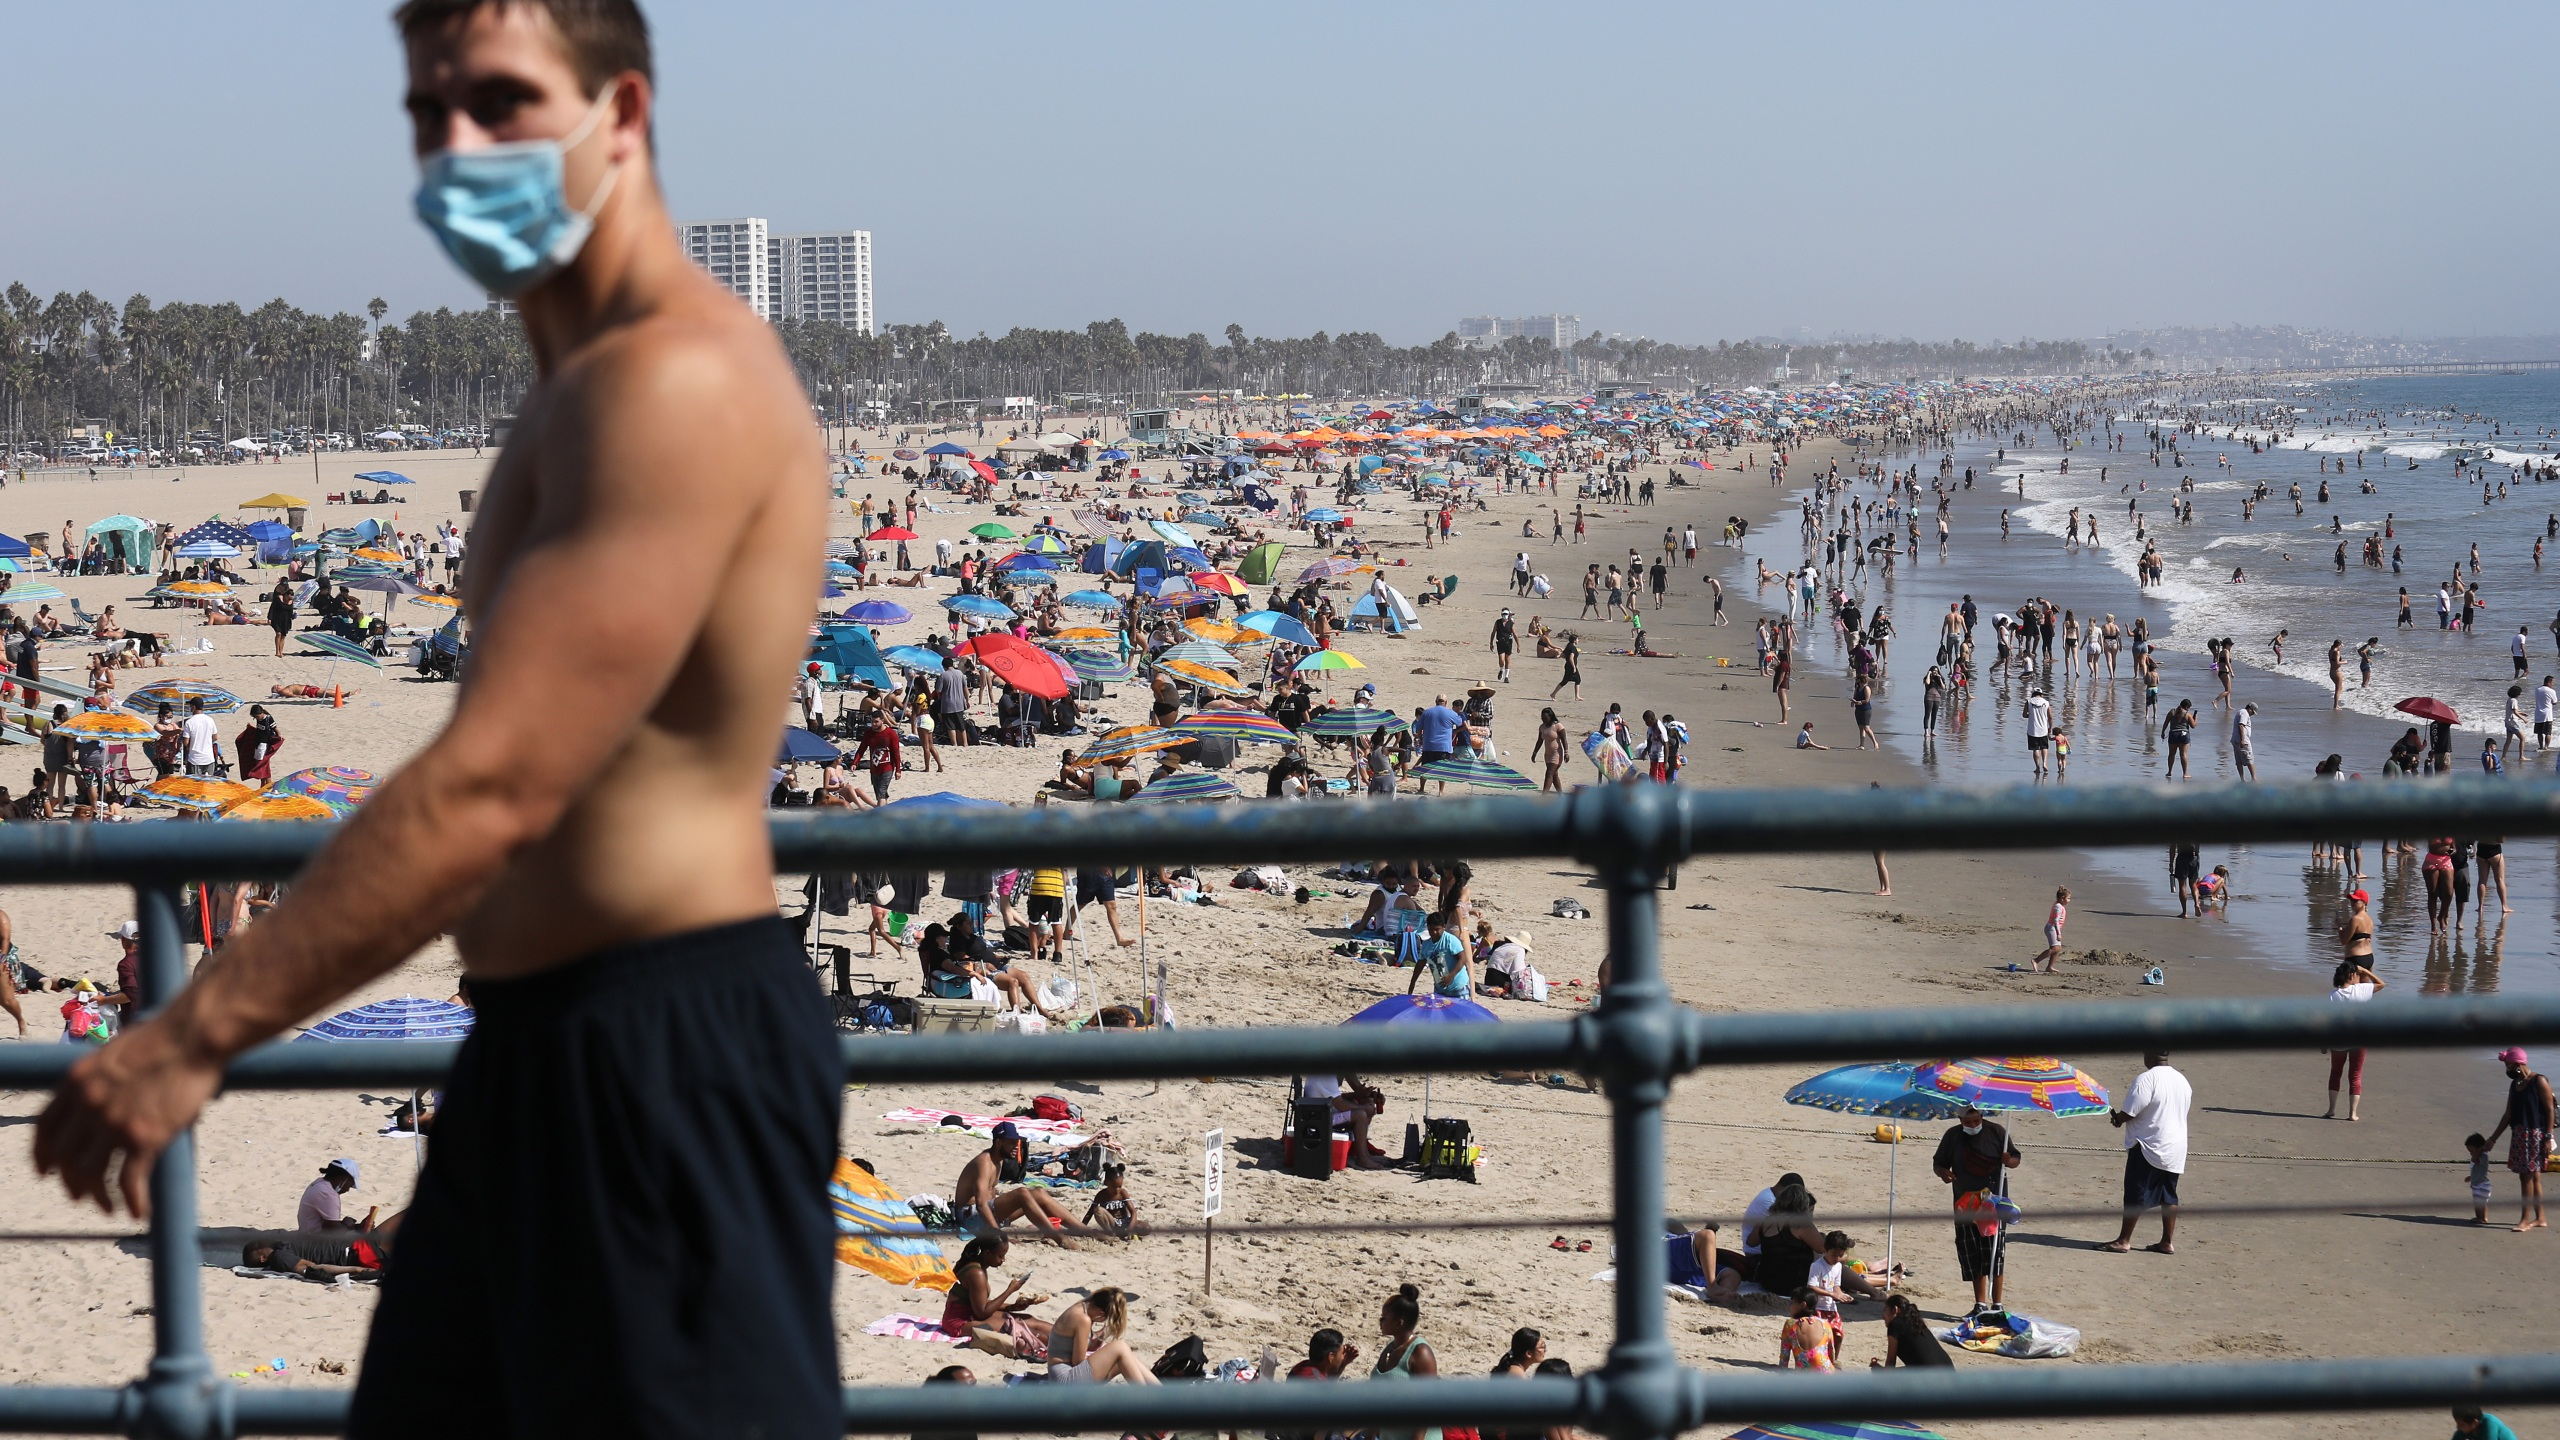 A man wears a face covering at the pier on the first day of the Labor Day weekend amid a heatwave on Sept. 5, 2020 in Santa Monica. (Photo by Mario Tama/Getty Images)